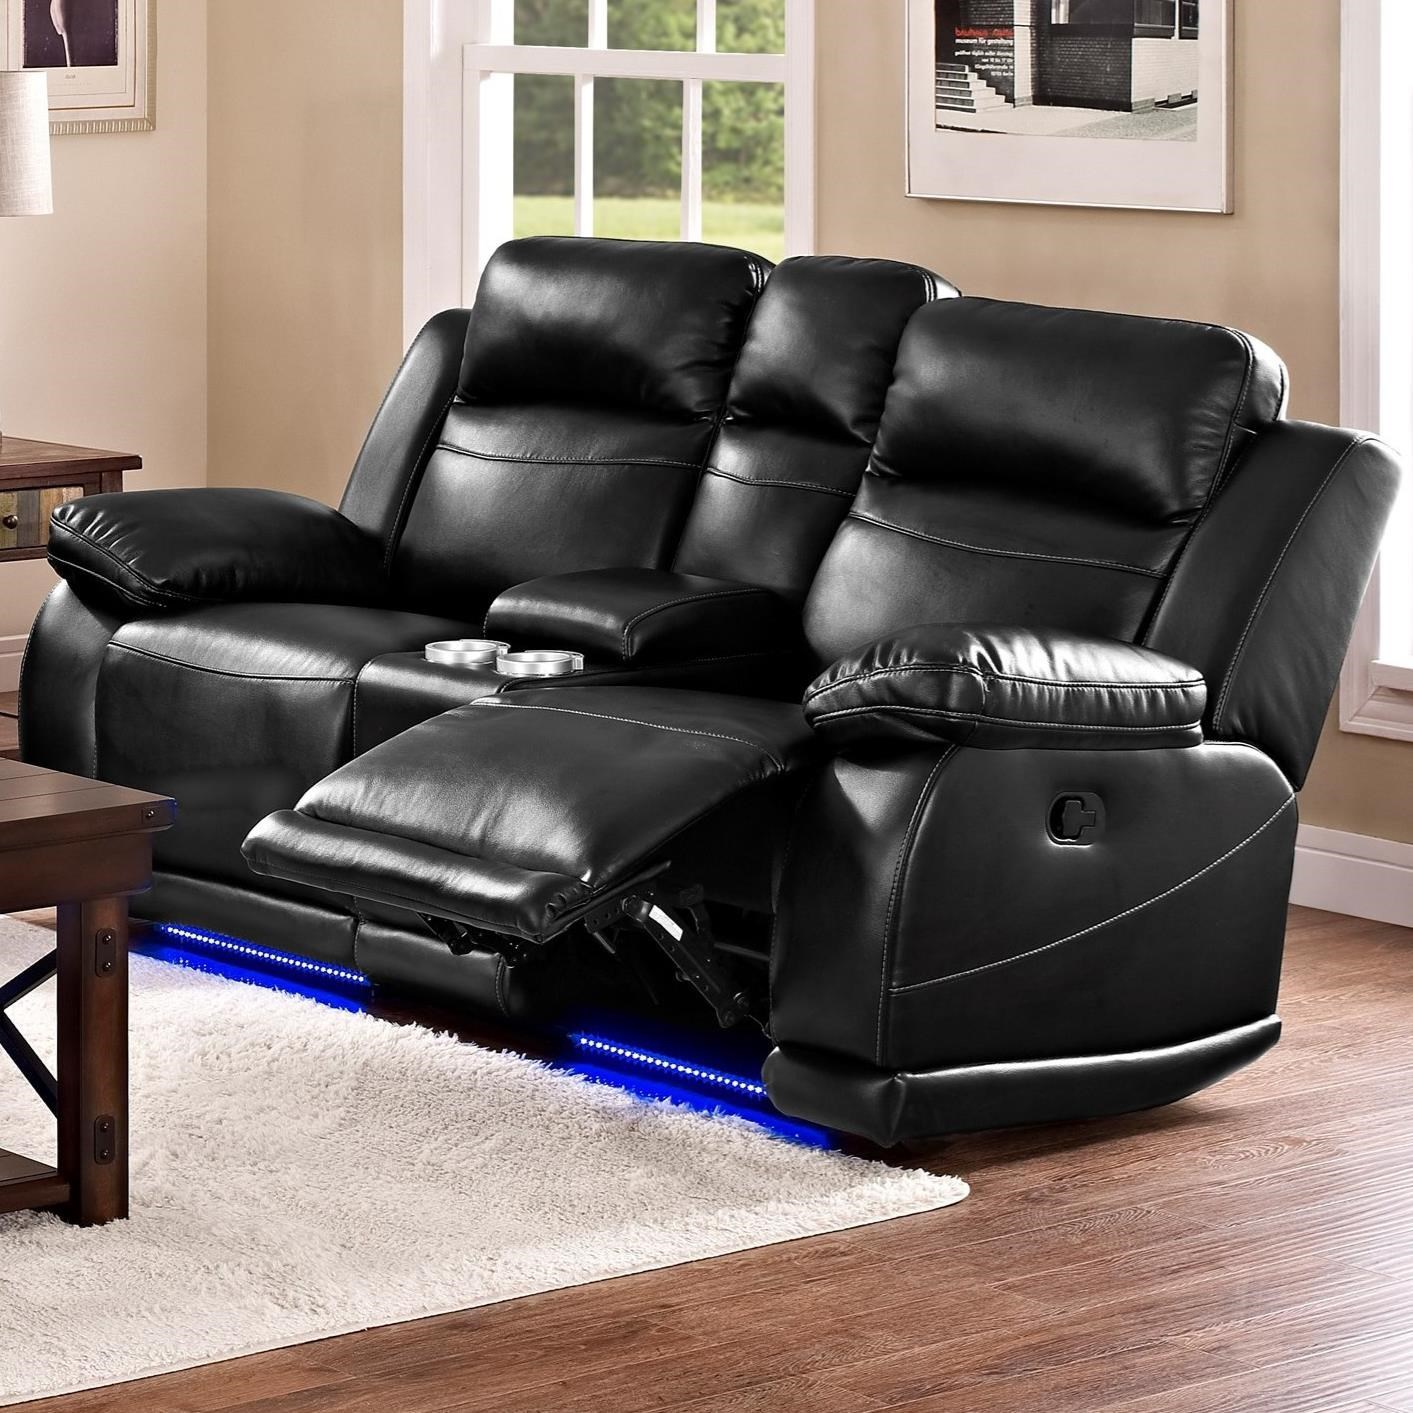 electric reclining loveseat new classic vega casual reclining loveseat with console and cup holders KYWQYJI